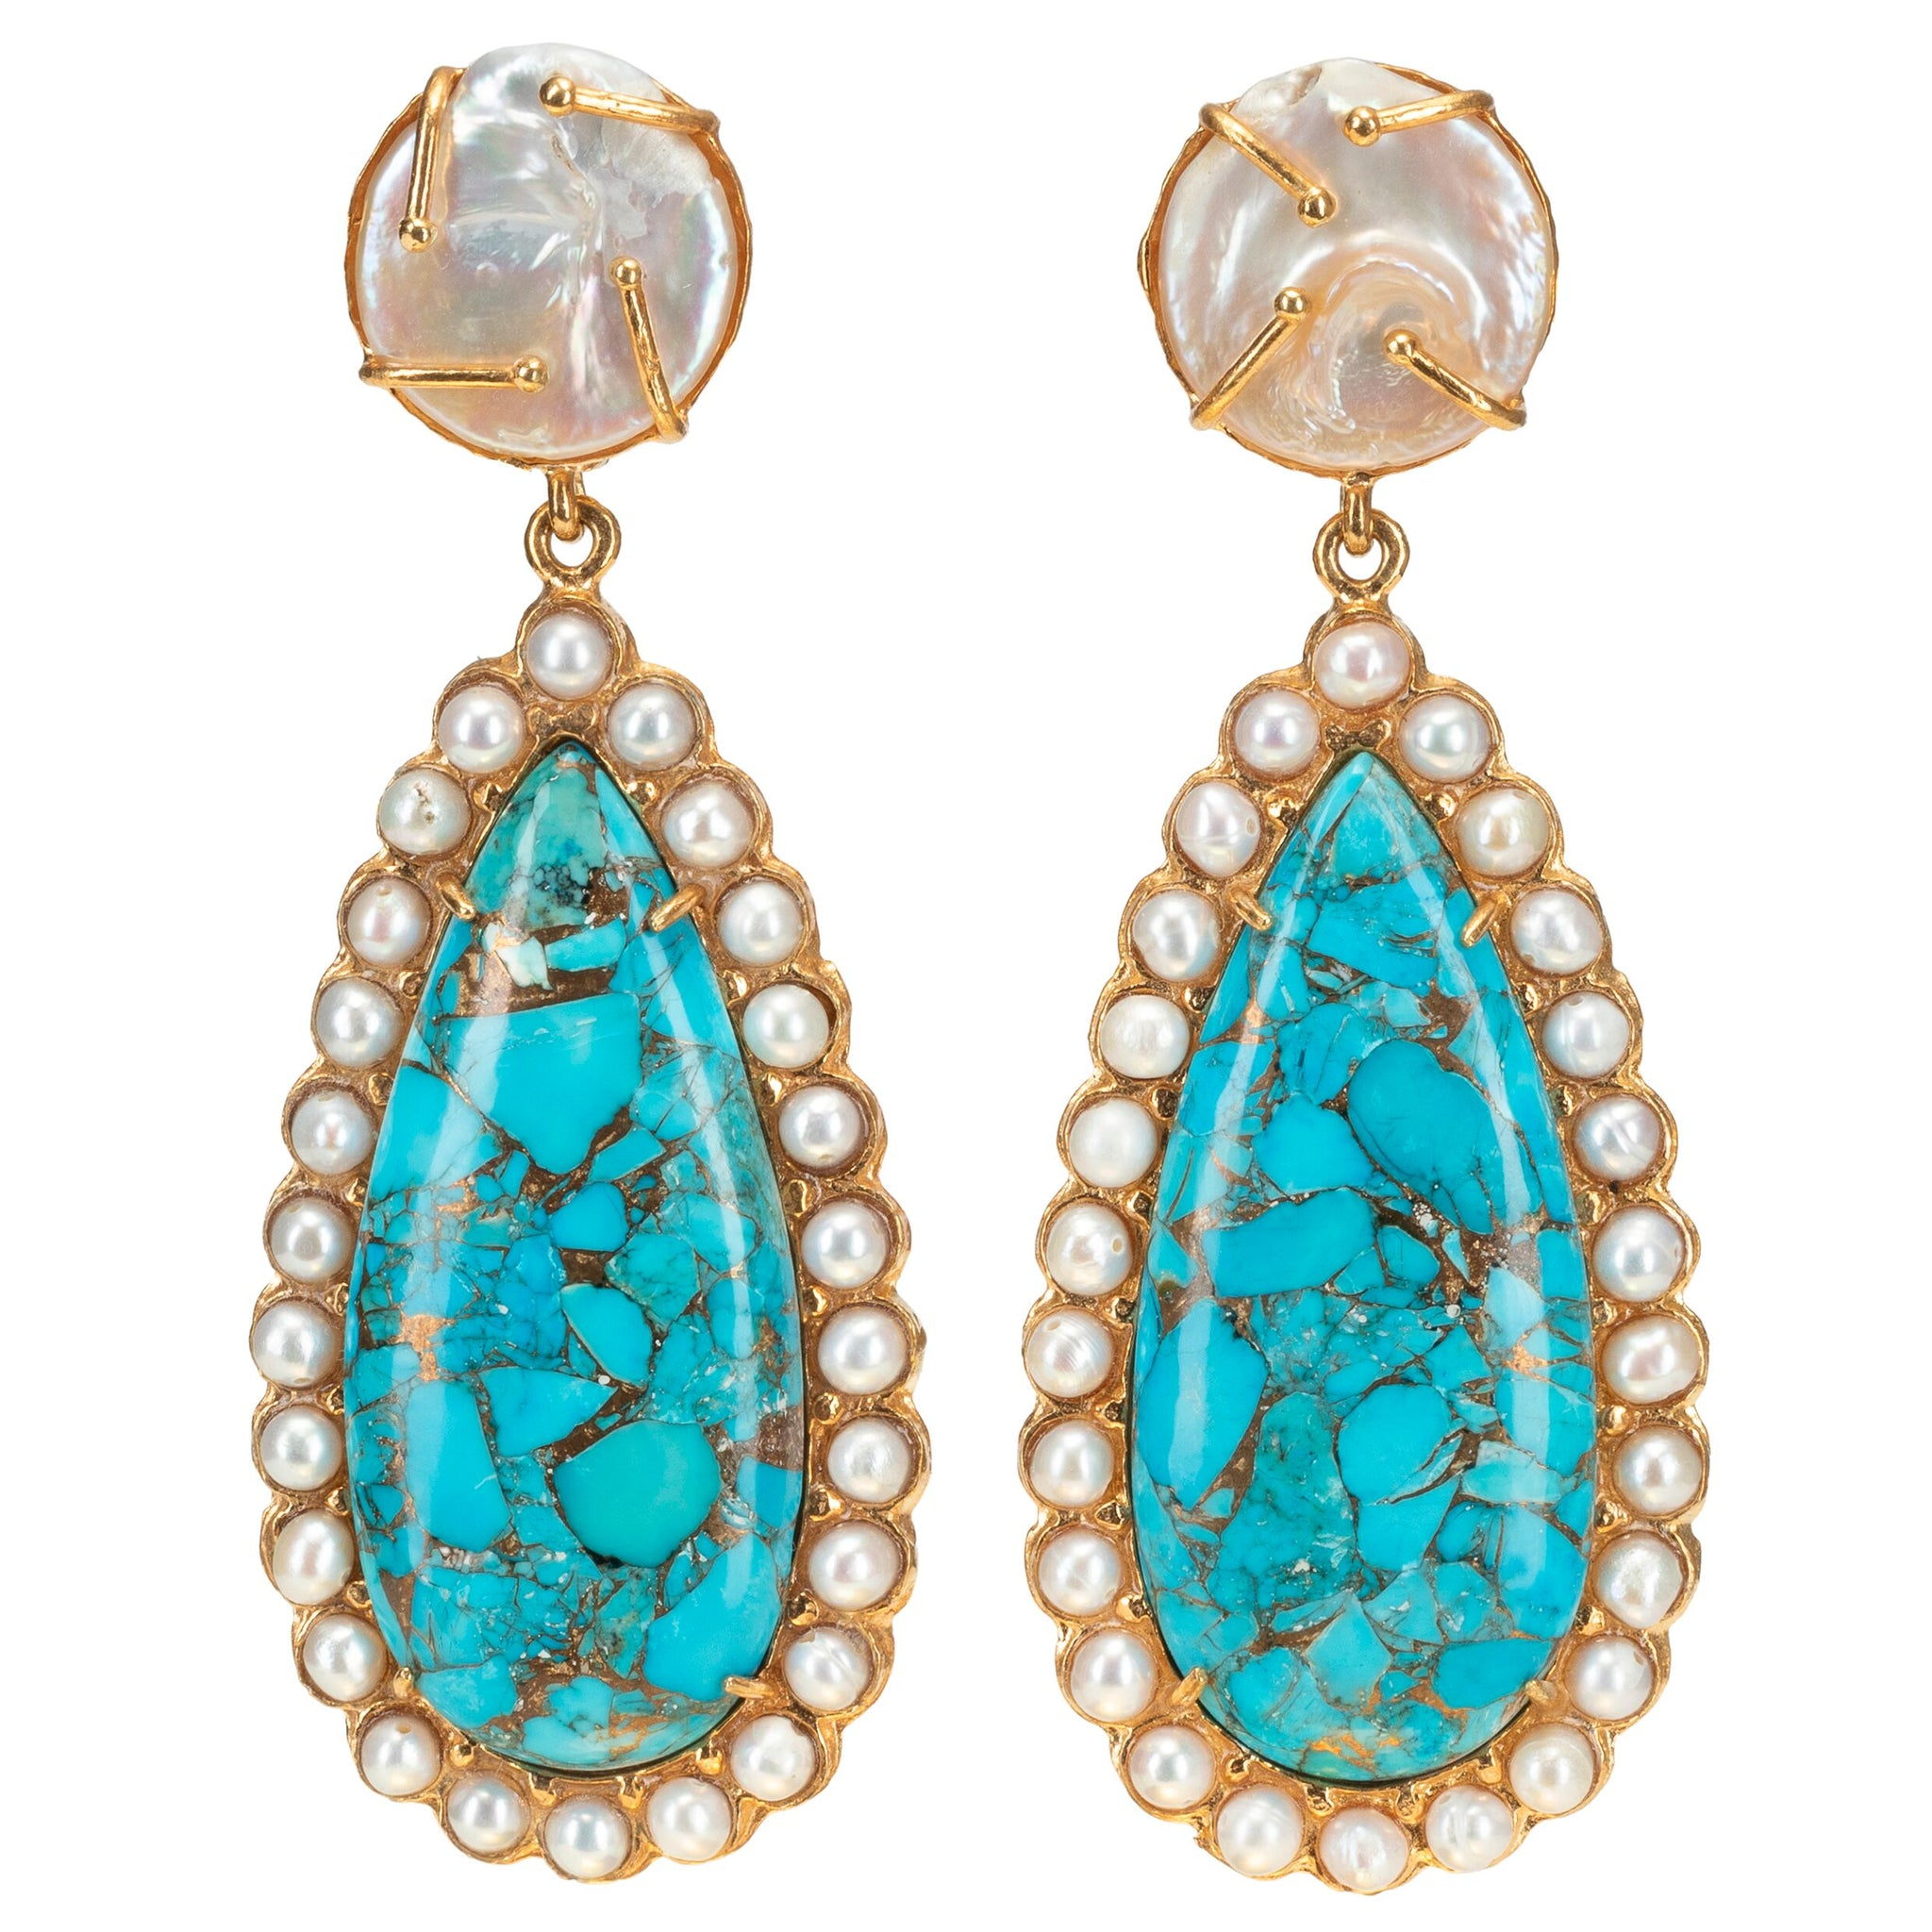 Grazia Earrings Turquoise